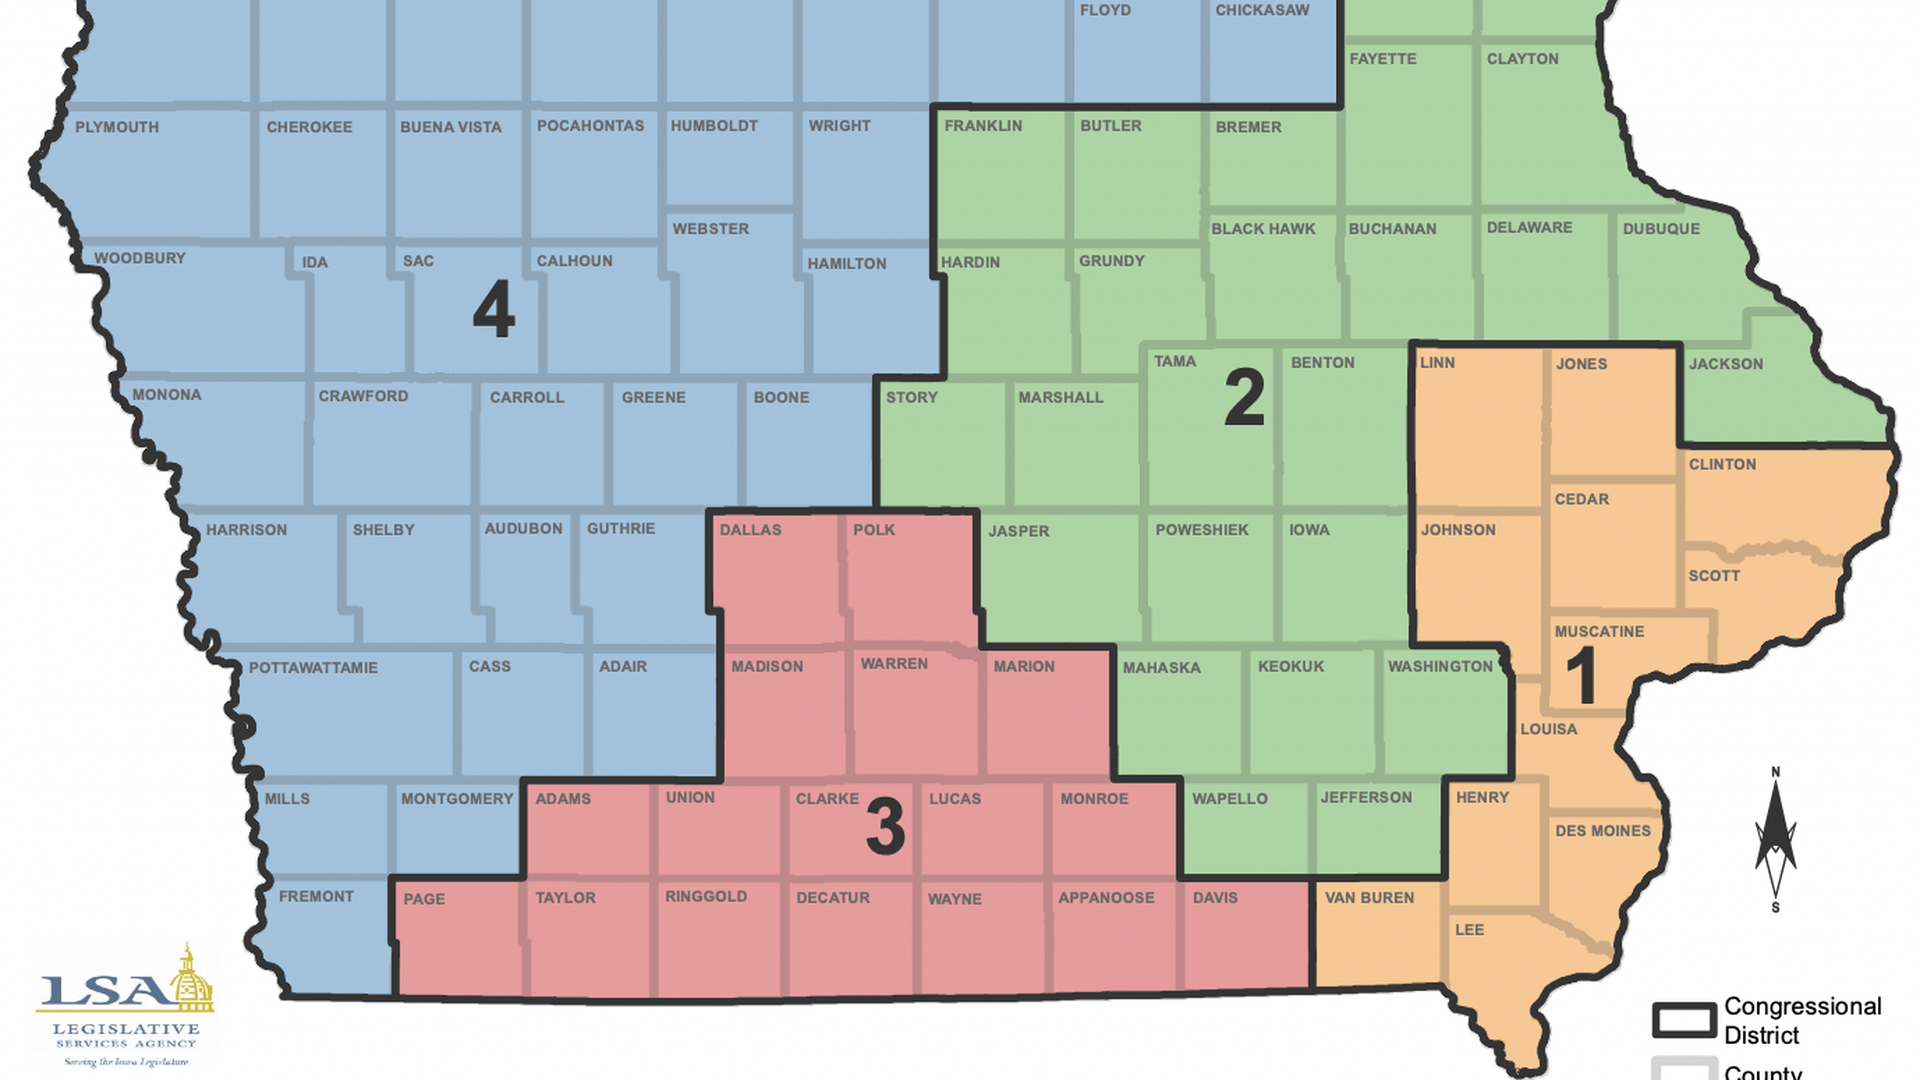 proposed congressional map from LSA.